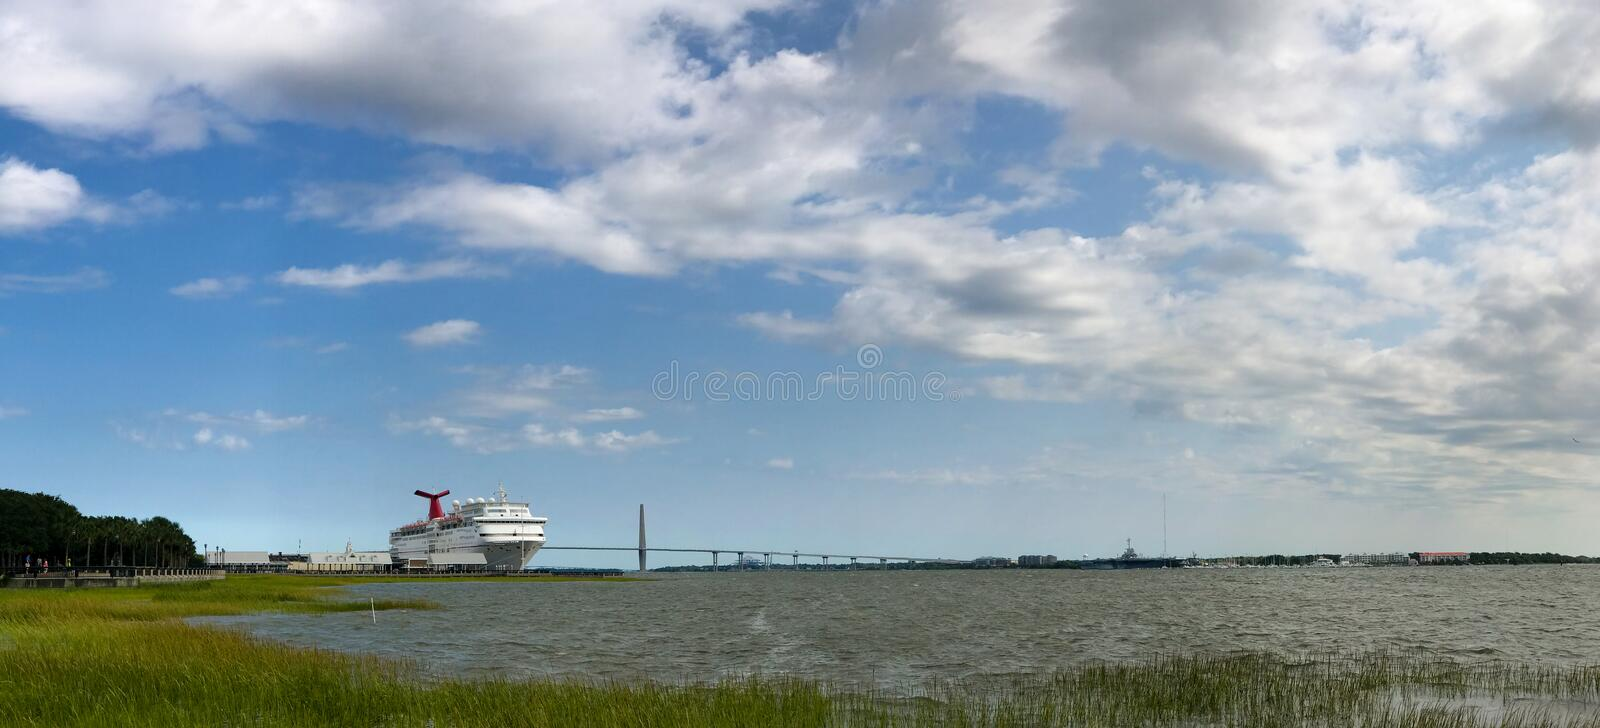 Cooper River, Charleston, SC. Wide view of the Cooper river in Charleston, SC, looking towards the Ravenel Bridge royalty free stock photo